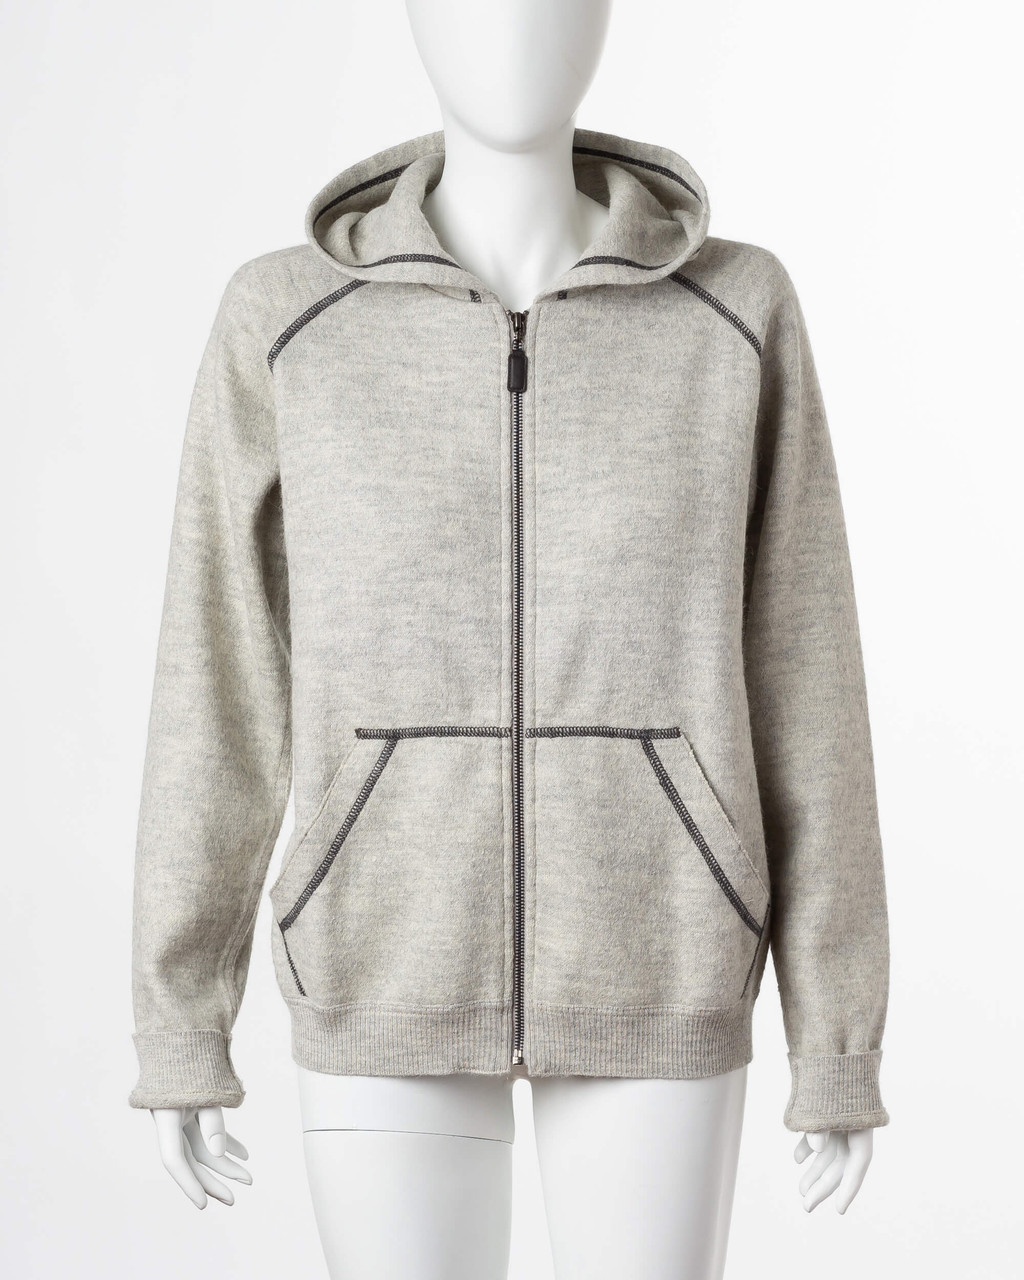 Alicia Adams Alpaca Verbier Zip Up For Women, alpaca sweater hoodie for women, alpaca sweater womens, pearl grey alpaca zip up hoodie